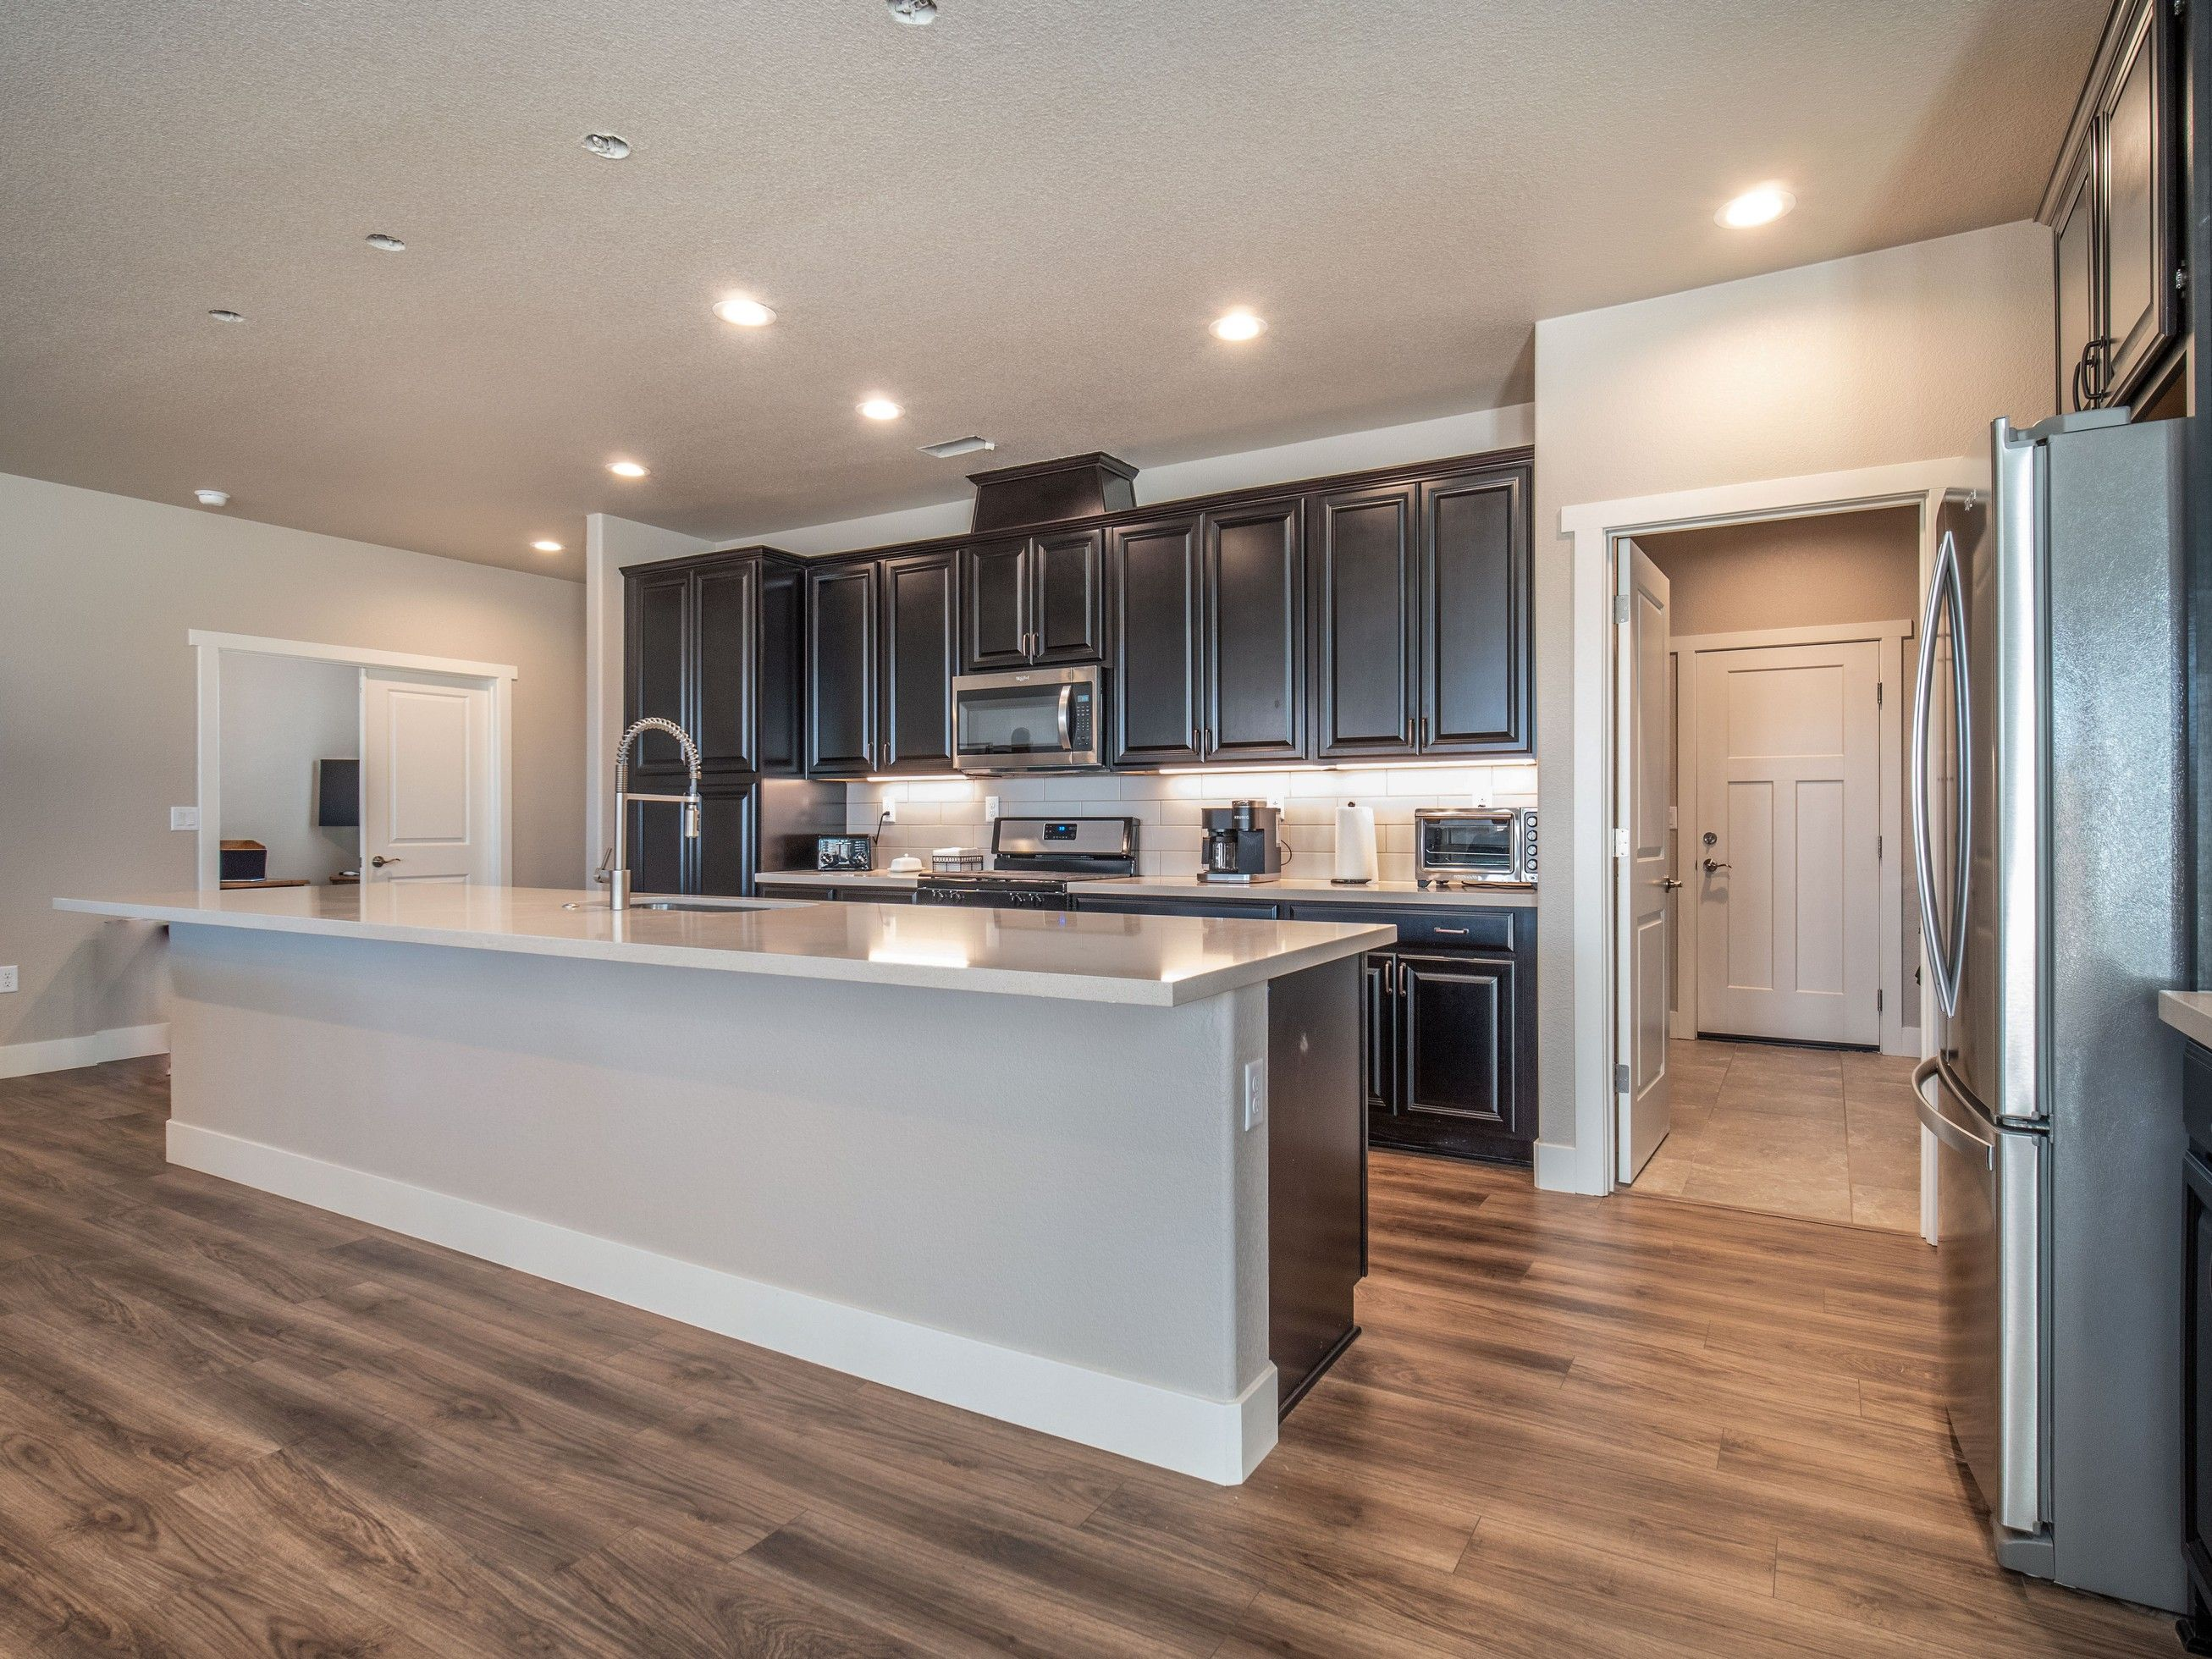 Kitchen featured in the Orchid By Carter Hill Homes in Reno, NV